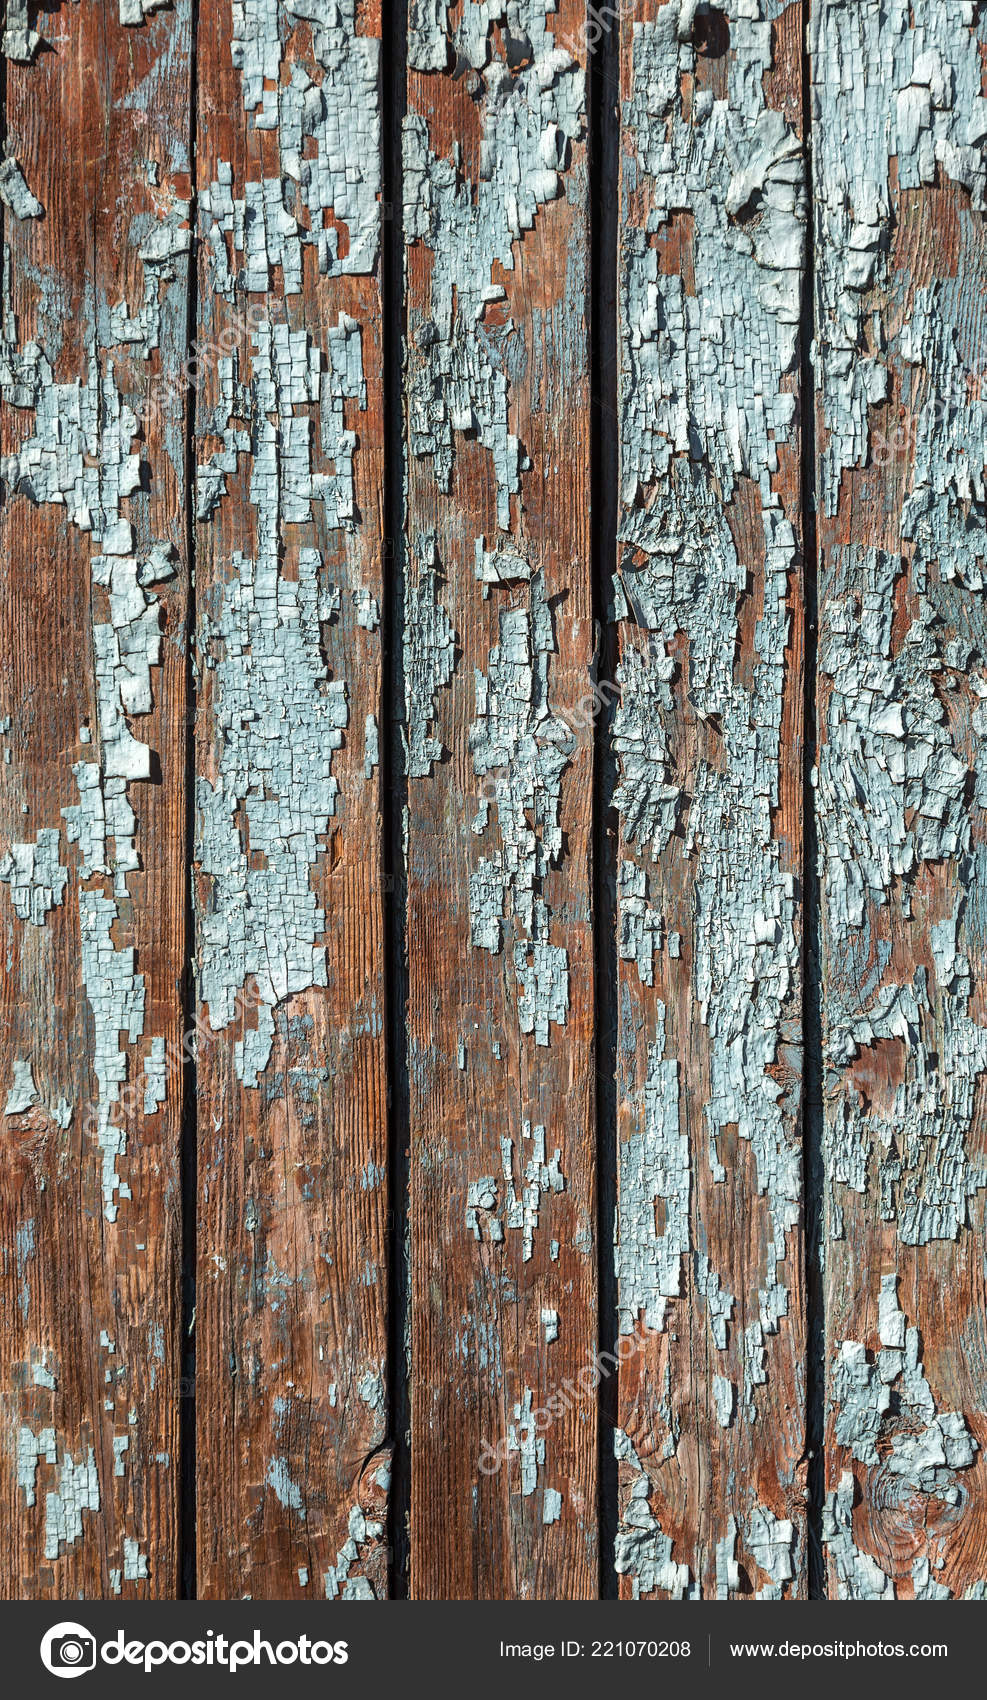 Depositphotos & Vintage Painted Wooden Background Texture Wooden Weathered Rustic ...